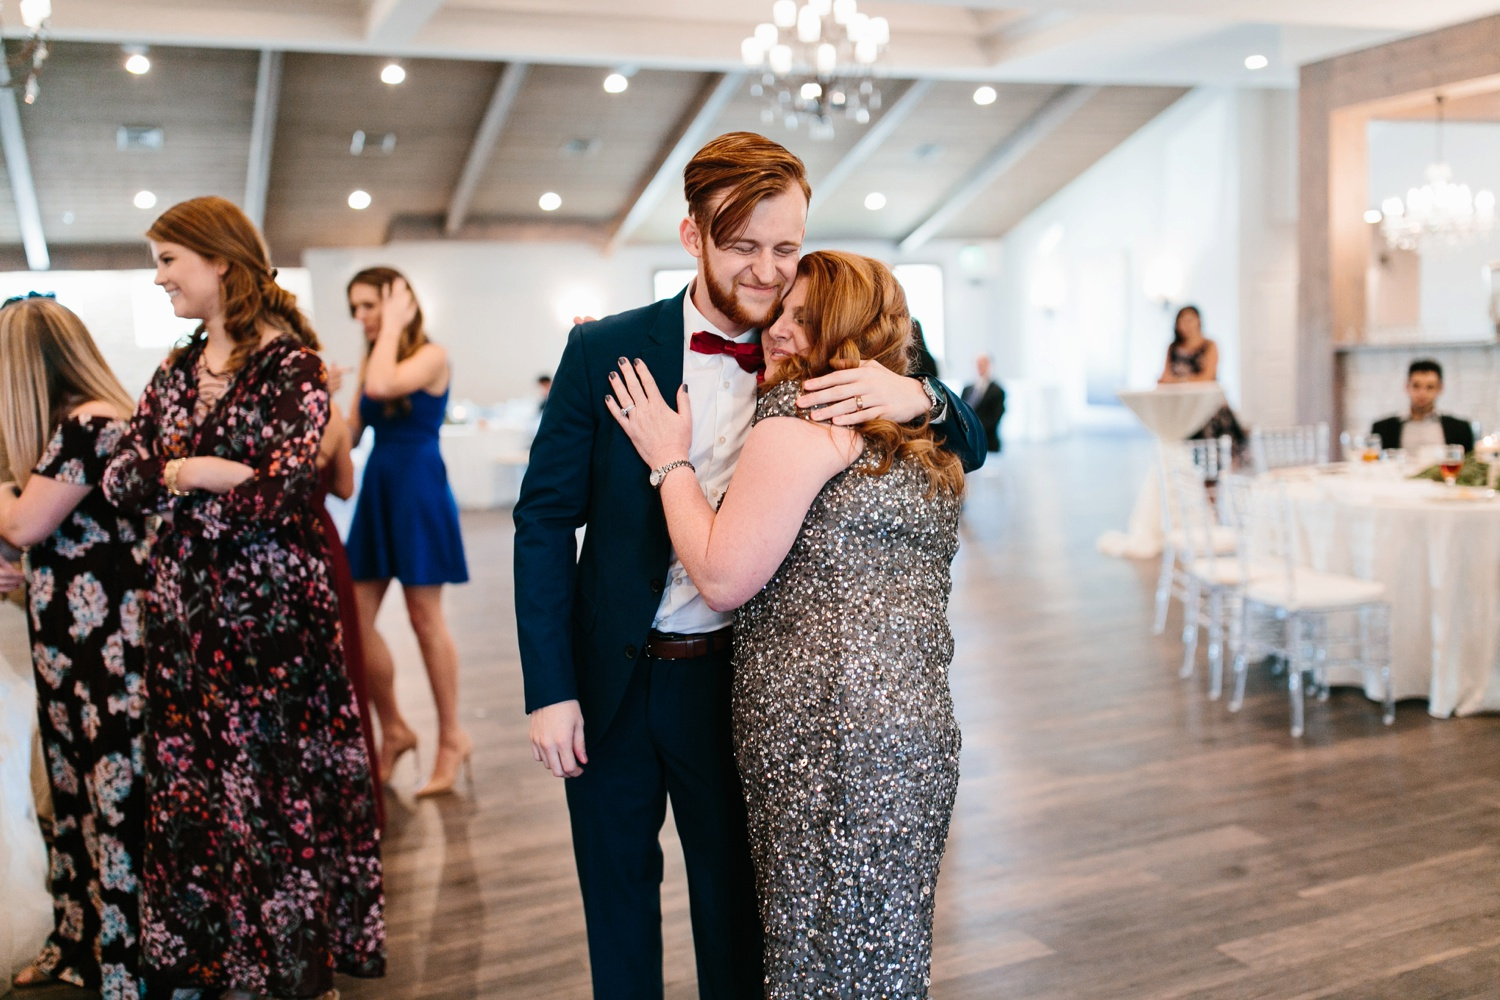 Grant + Lysette | a vibrant, deep burgundy and navy, and mixed metals wedding at Hidden Pines Chapel by North Texas Wedding Photographer Rachel Meagan Photography 188